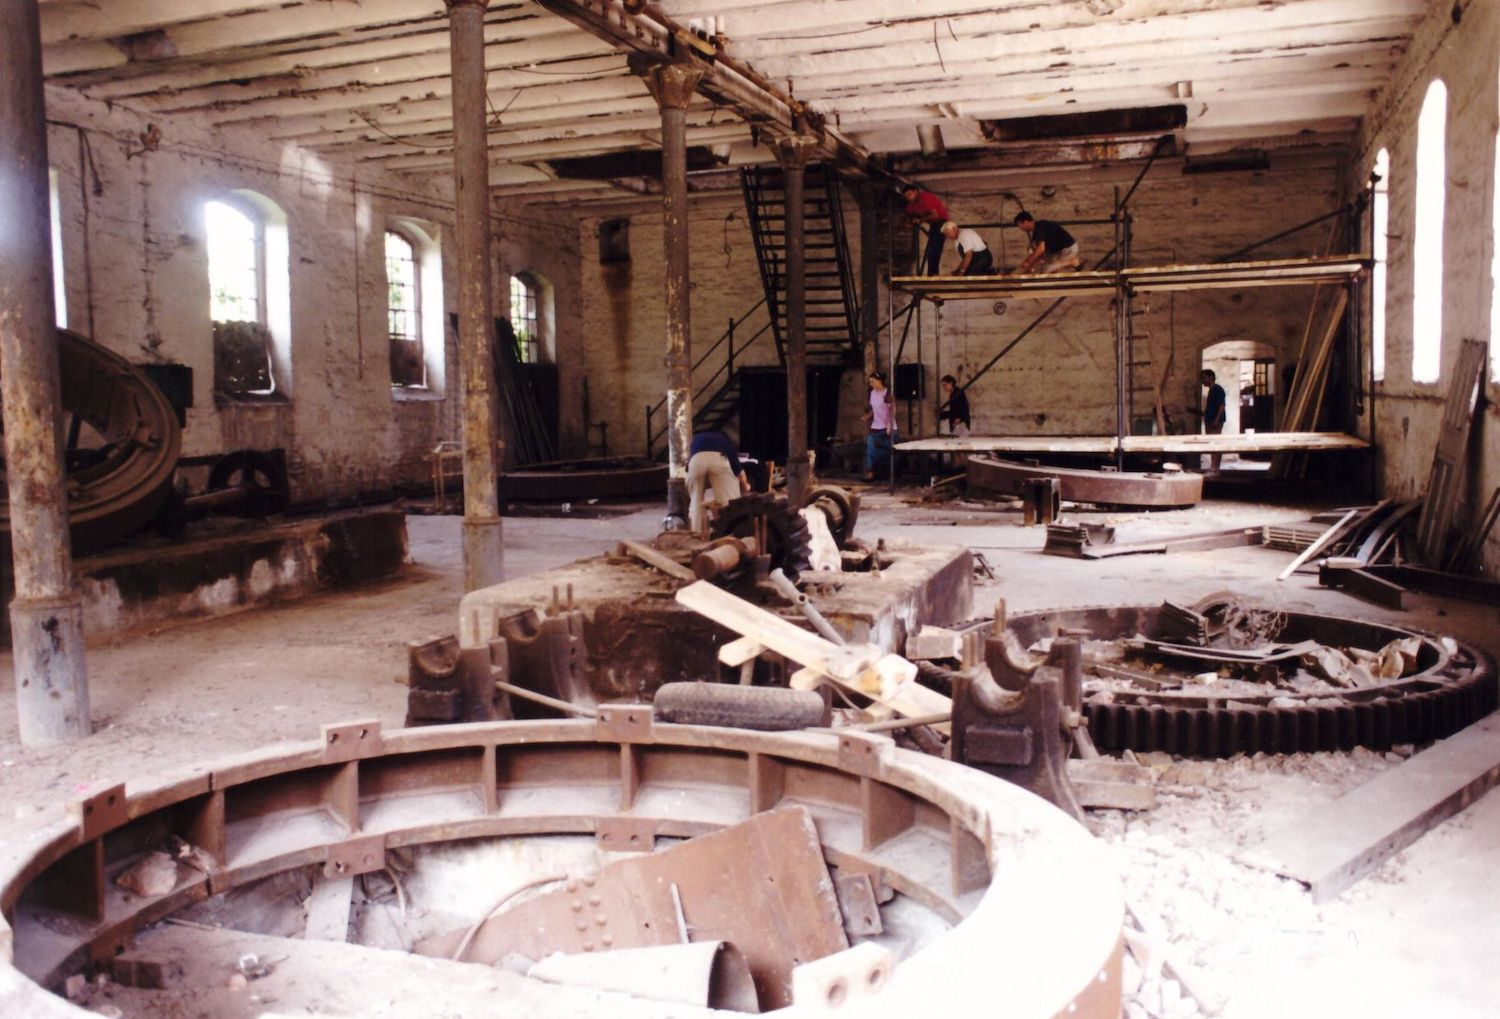 Removing the industrial machinery from the Sugar Factory in 1995, as construction of the theatre began